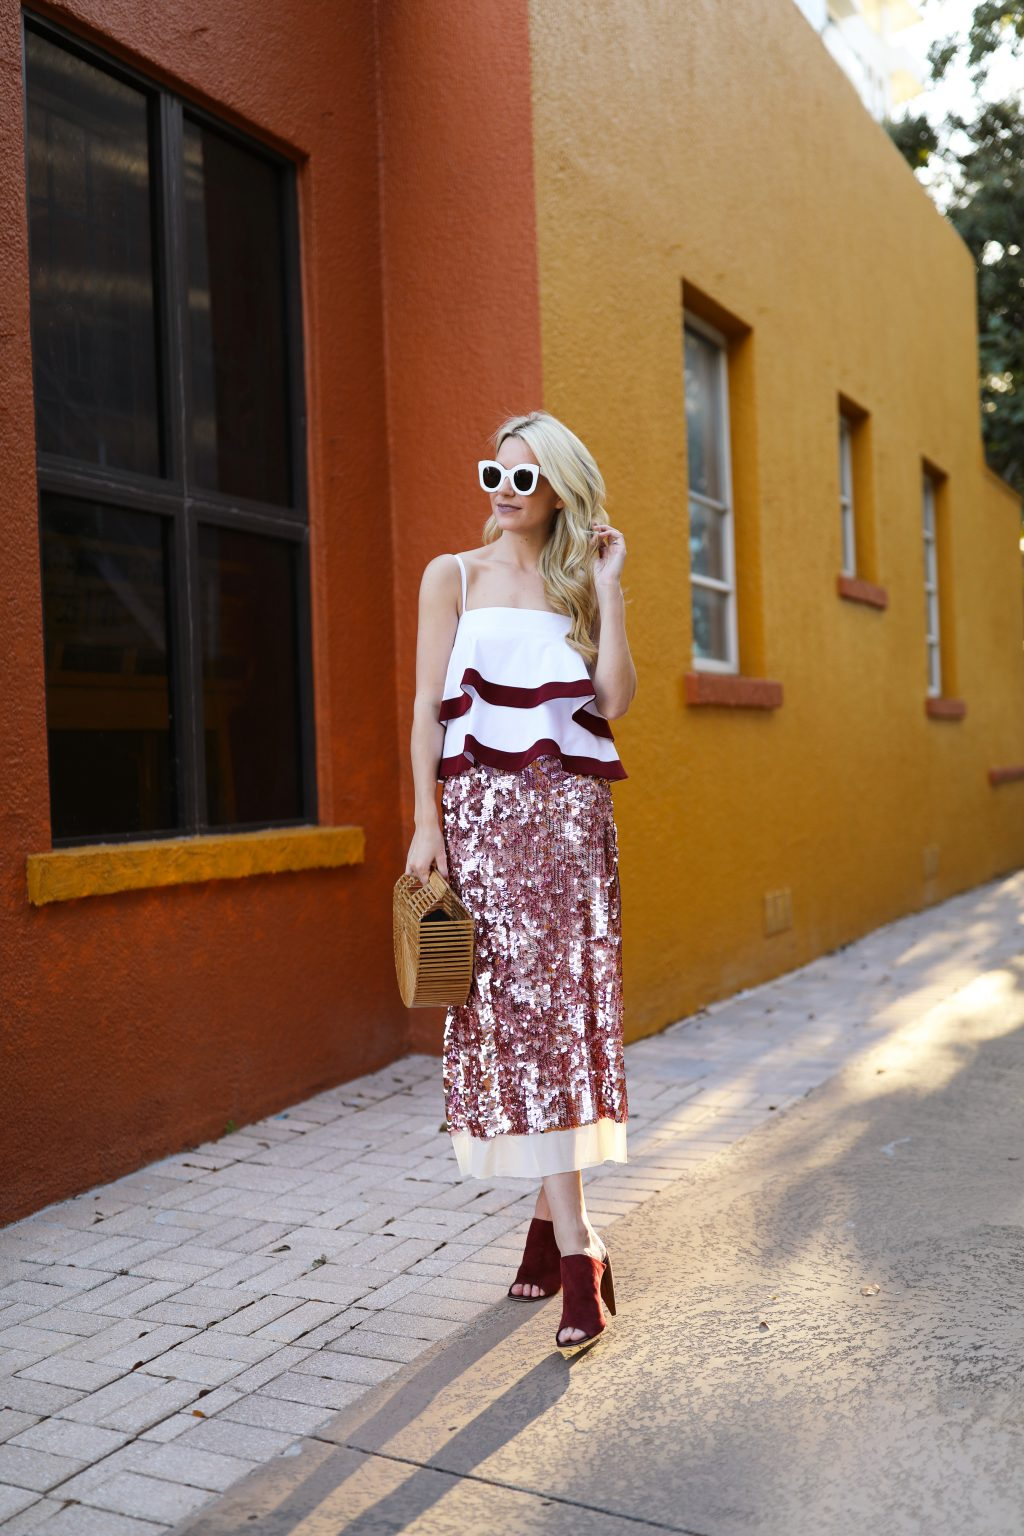 tory-burch-atlantic-pacific-blog-blogger-job-pink-blush-sequin-sparkle-skirt-ruffles